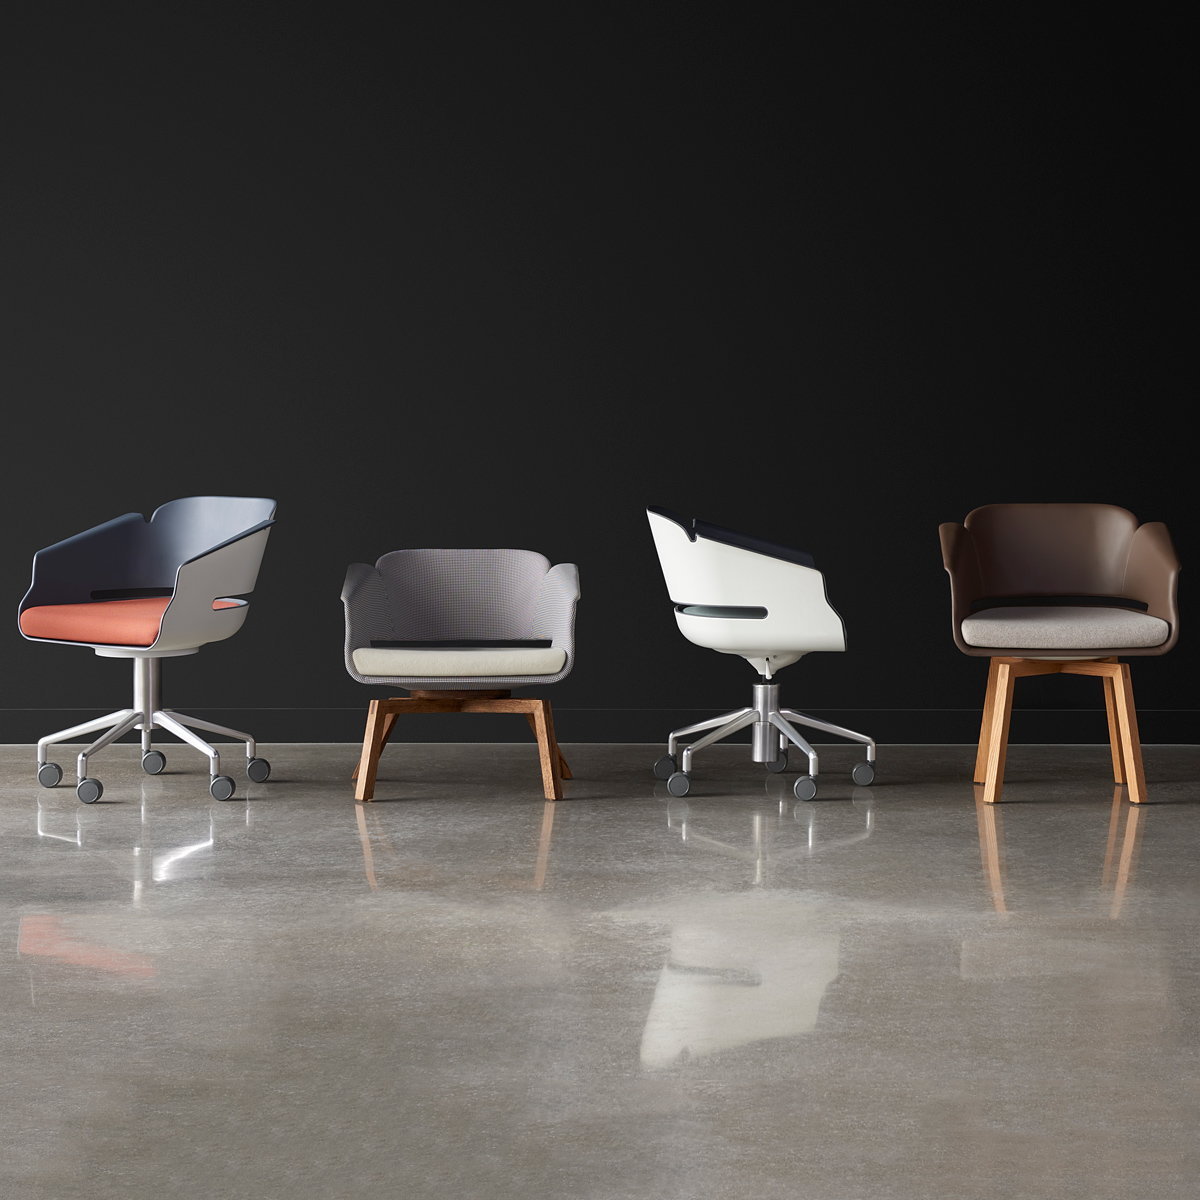 Allseating's Lyss Chair Awarded IDEA's Bronze Honor